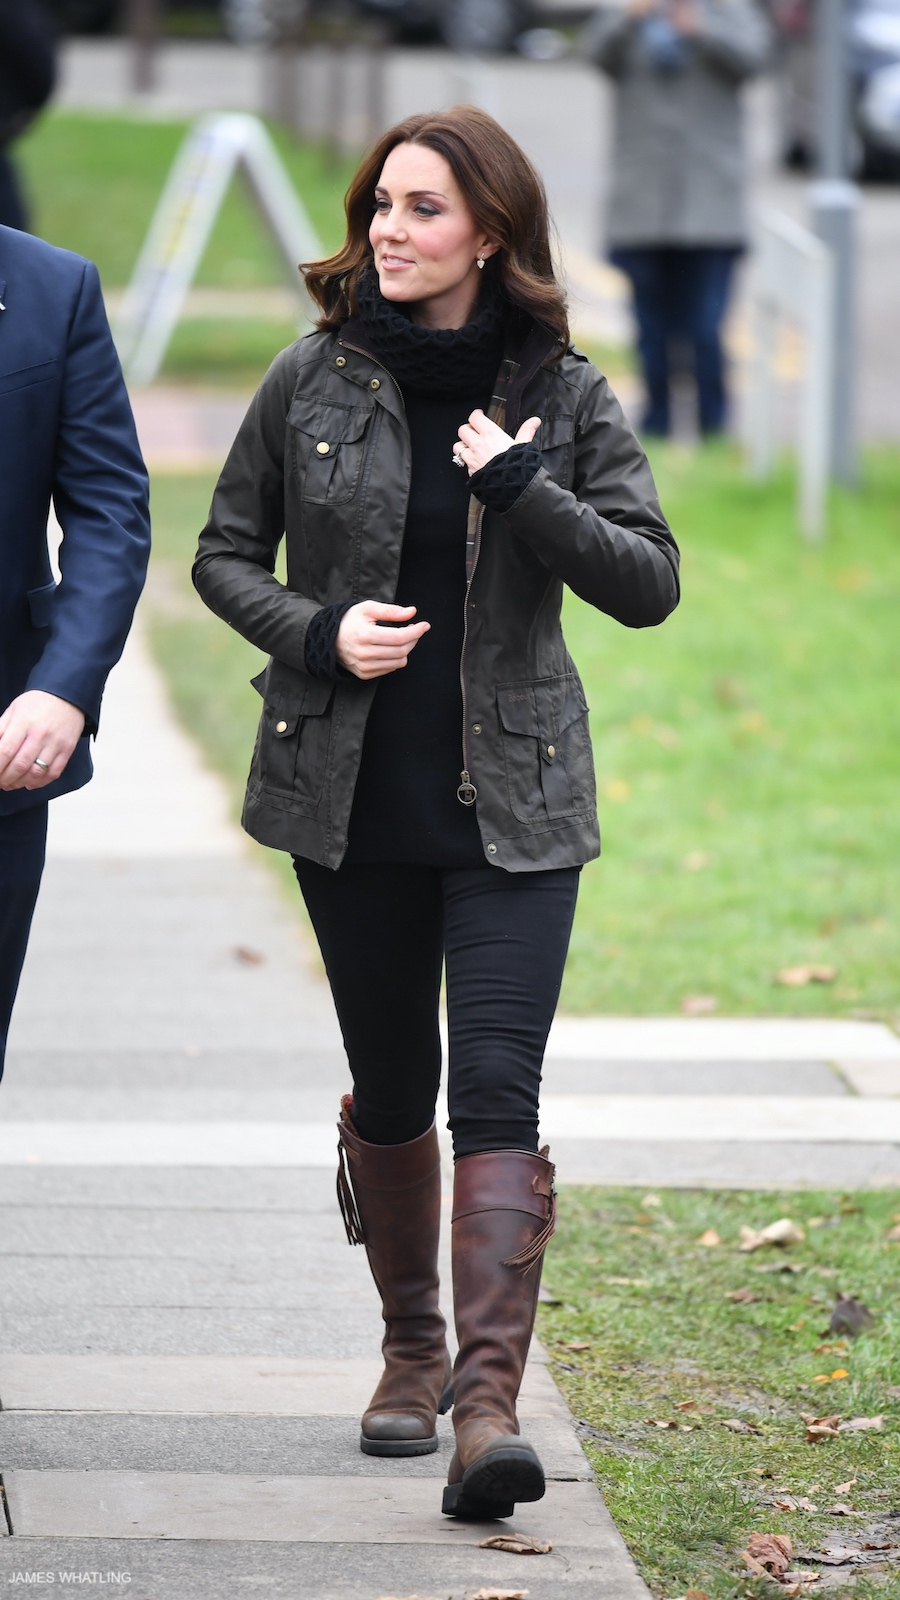 Kate Middleton wearing the Penelope Chilvers boots at Robin Hood School in London